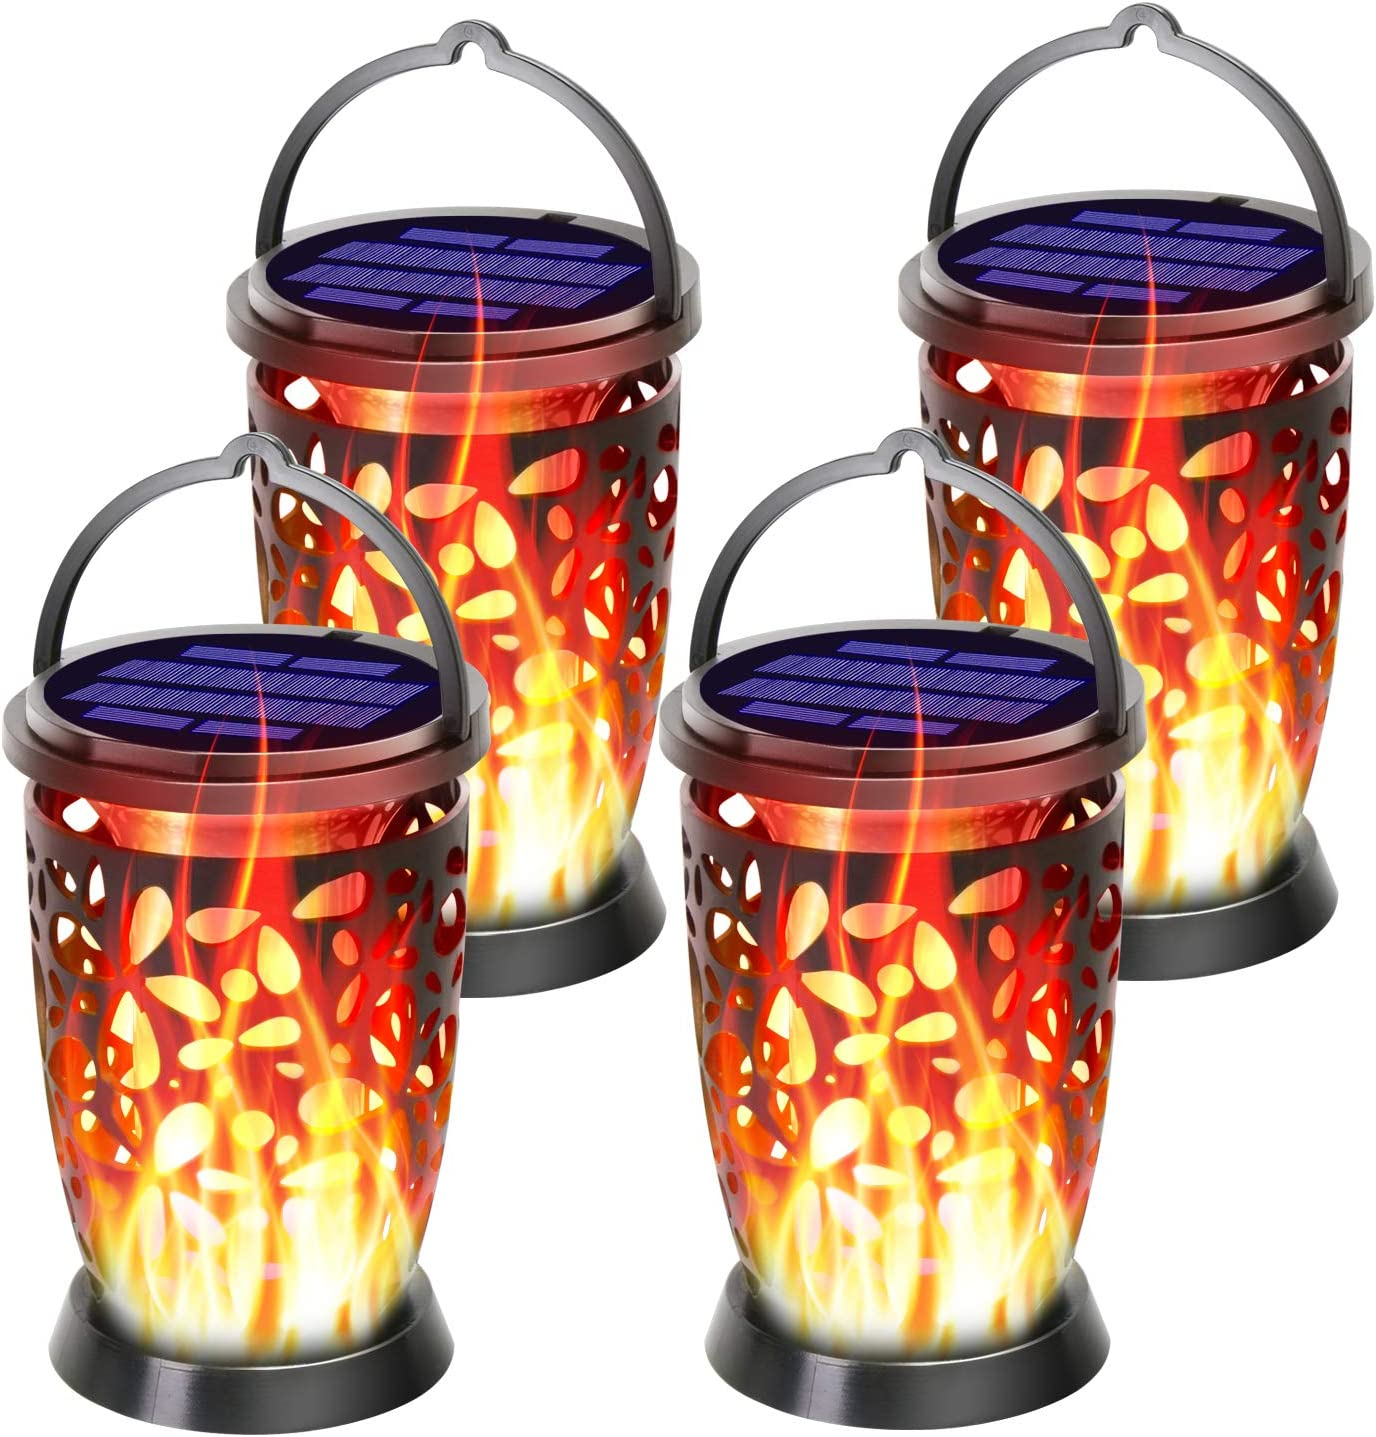 Woenergy Upgraded Solar Free shipping on posting reviews Lights Outdoor Lanterns Regular dealer with Hanging Gro